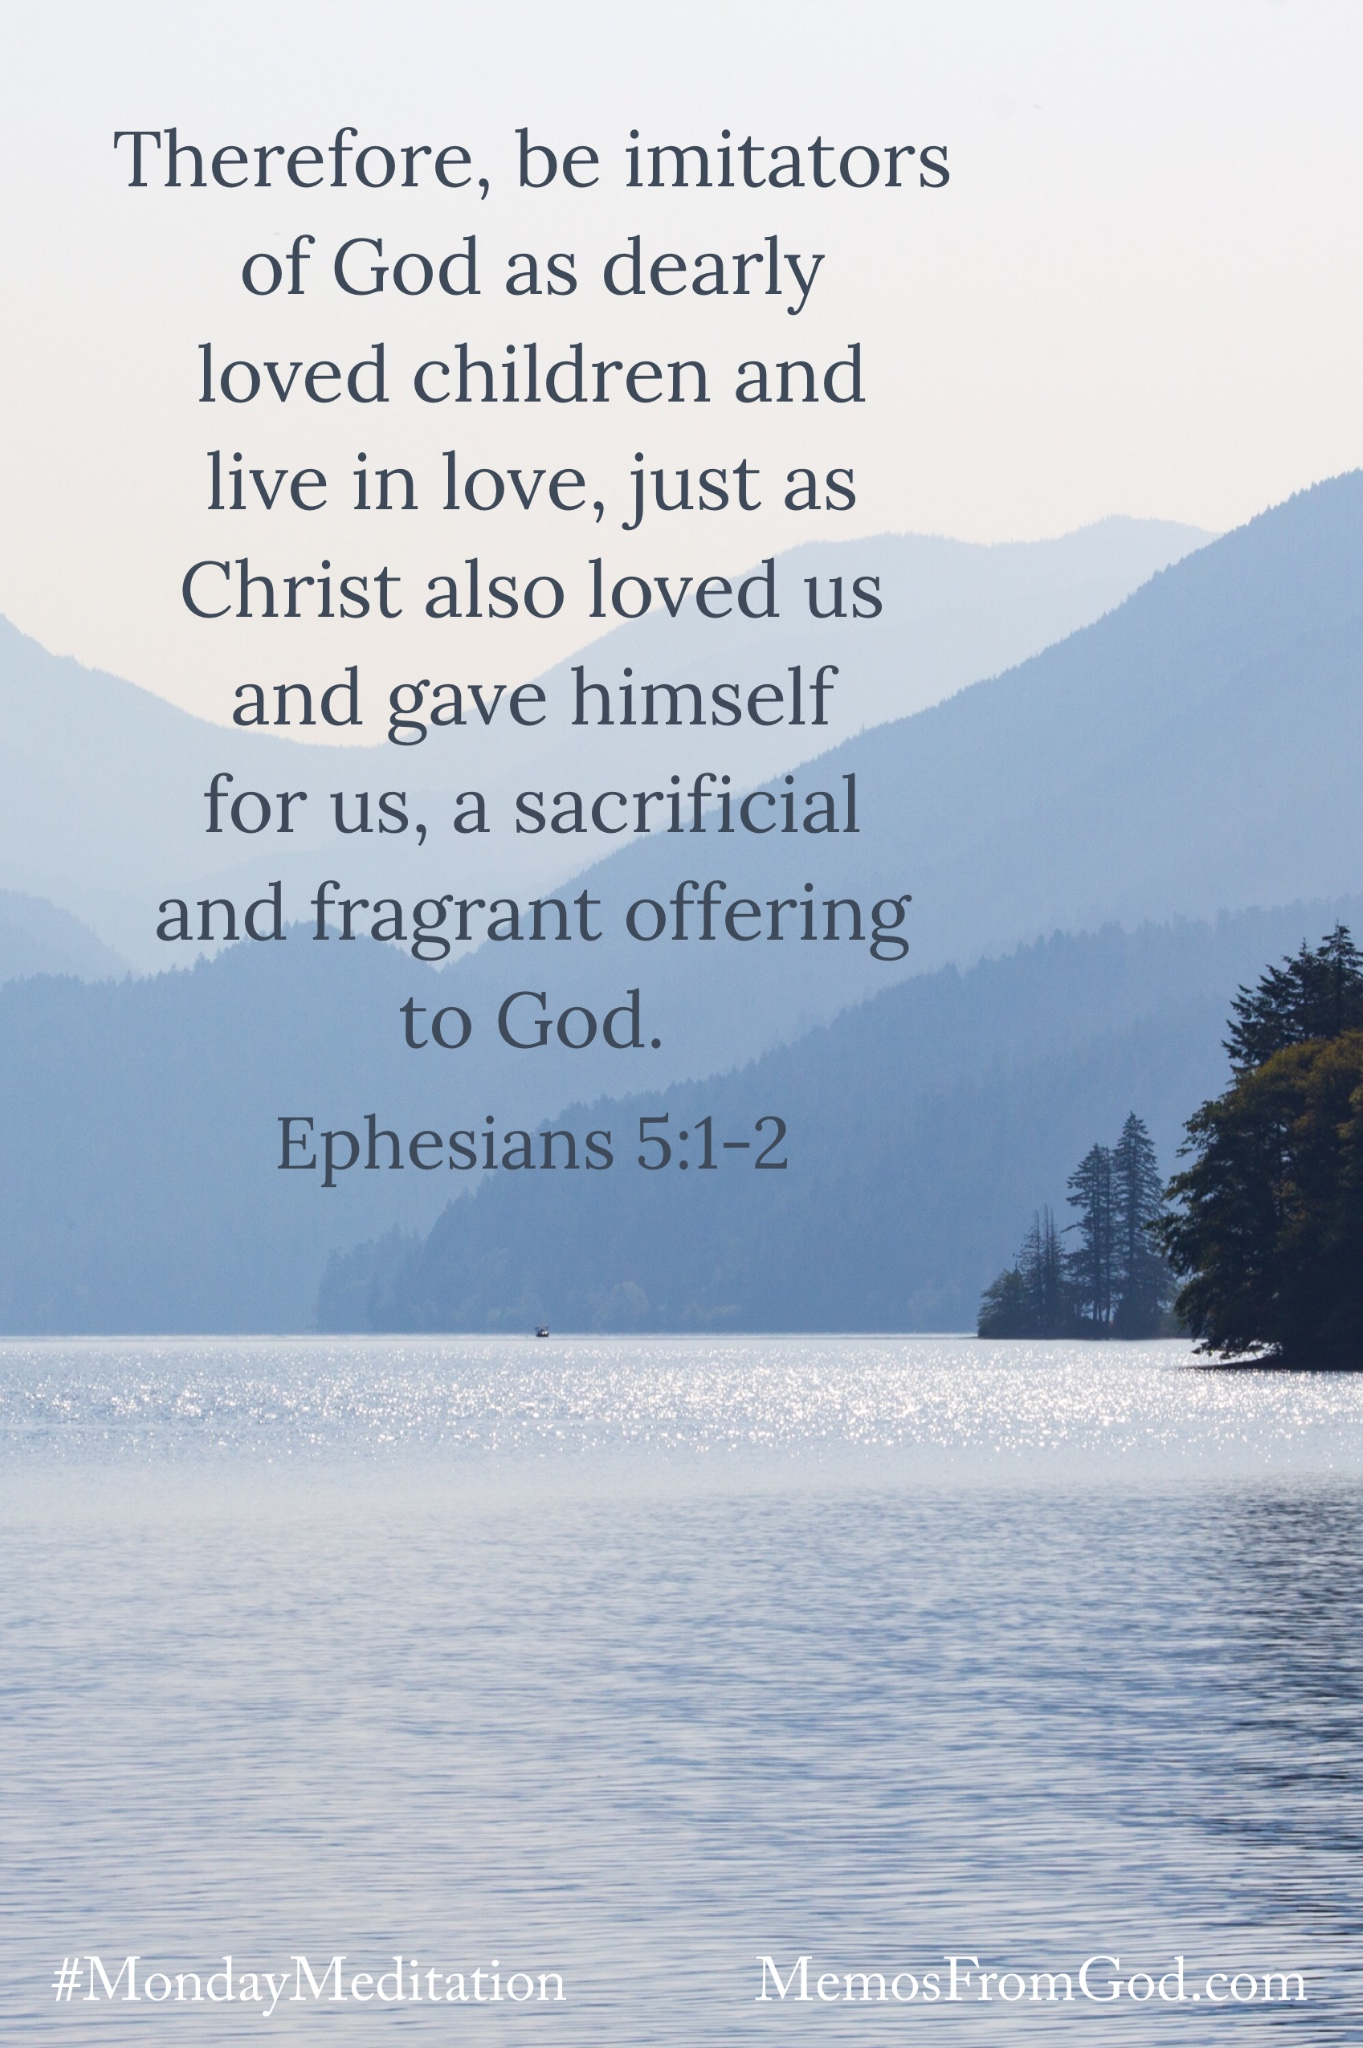 Looking across a lake to mountains silhouetted in various shades of grey. Caption: Therefore, be imitators of God as dearly loved children and live in love, just as Christ also loved us and gave himself for us, a sacrificial and fragrant offering to God. Ephesians 5:1-2